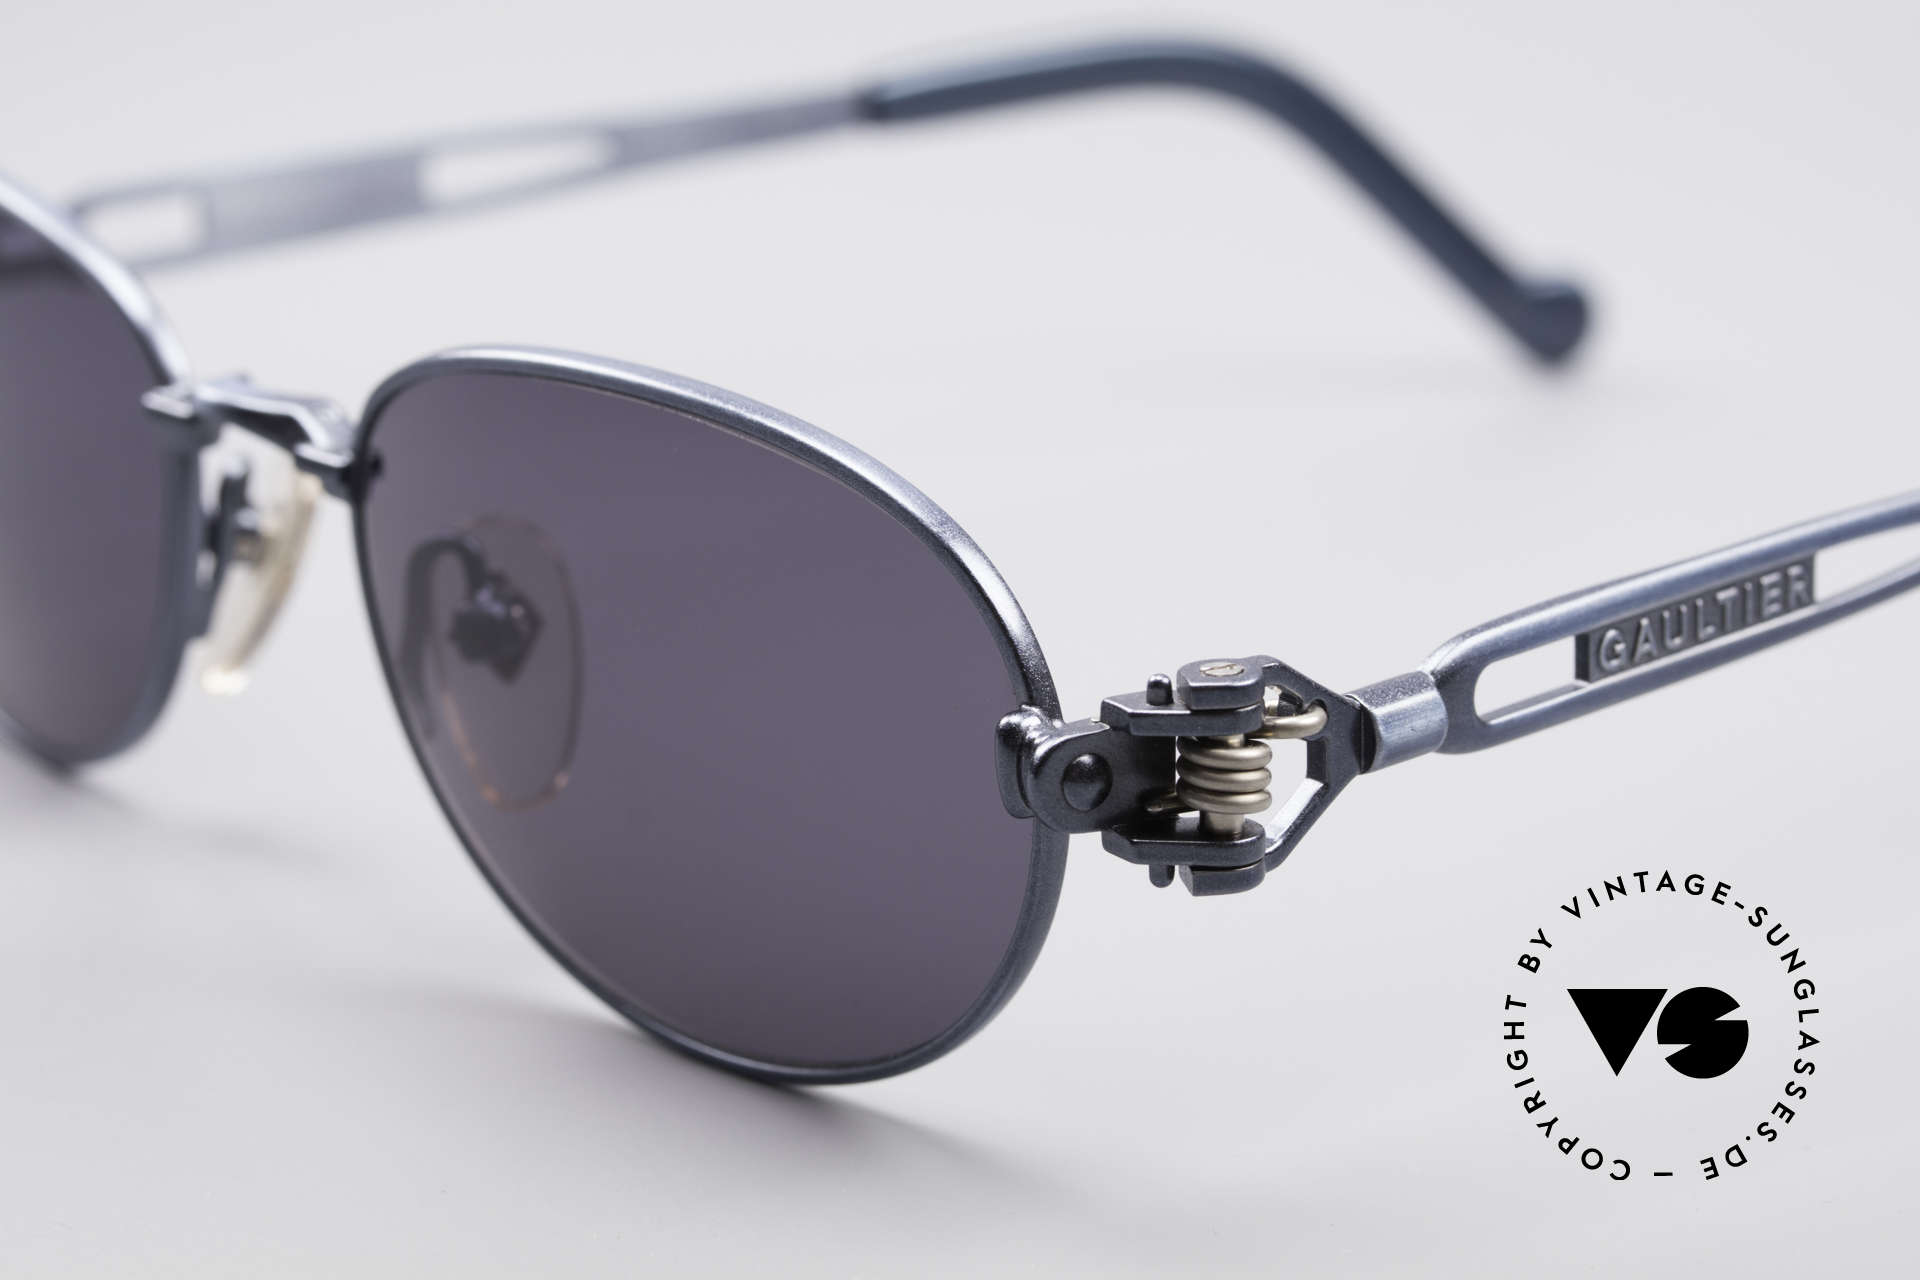 Jean Paul Gaultier 56-8102 Oval Industrial Sunglasses, blue-metallic and temple ends with a watch symbol, Made for Men and Women